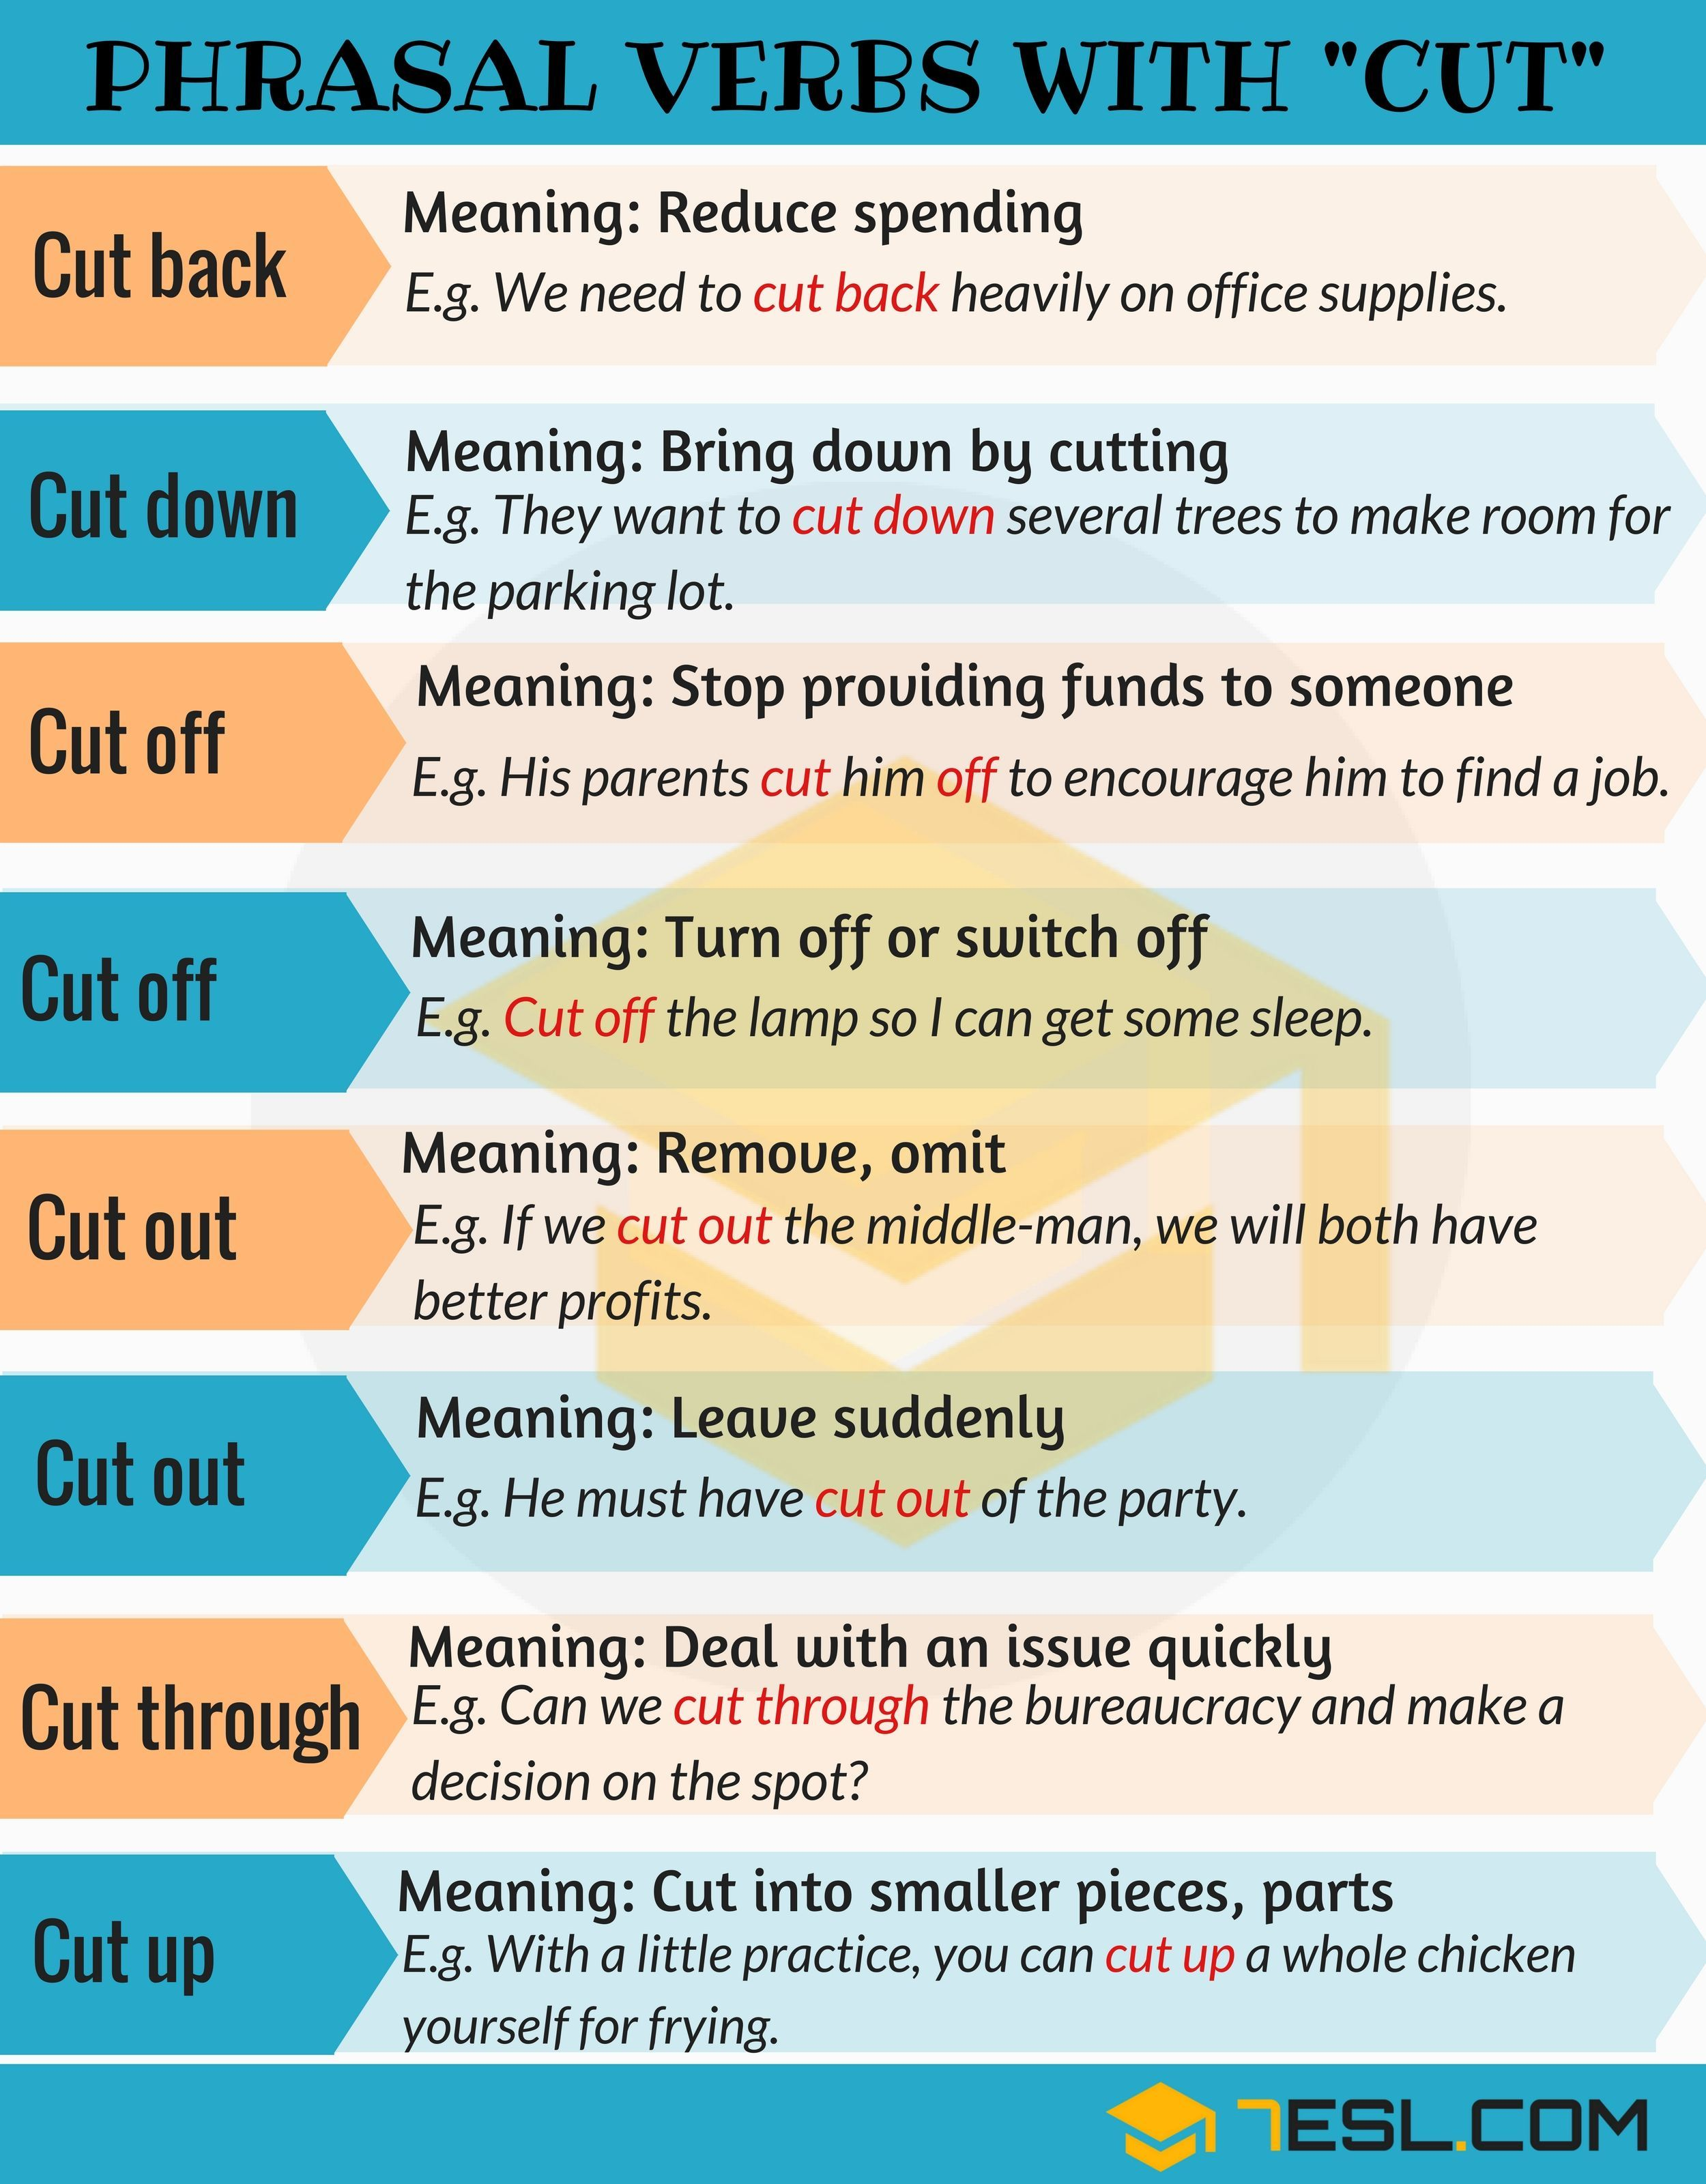 95shares commonly used phrasal verbs with cut in english you can 95shares commonly used phrasal verbs with cut in english you can jump to any section solutioingenieria Images